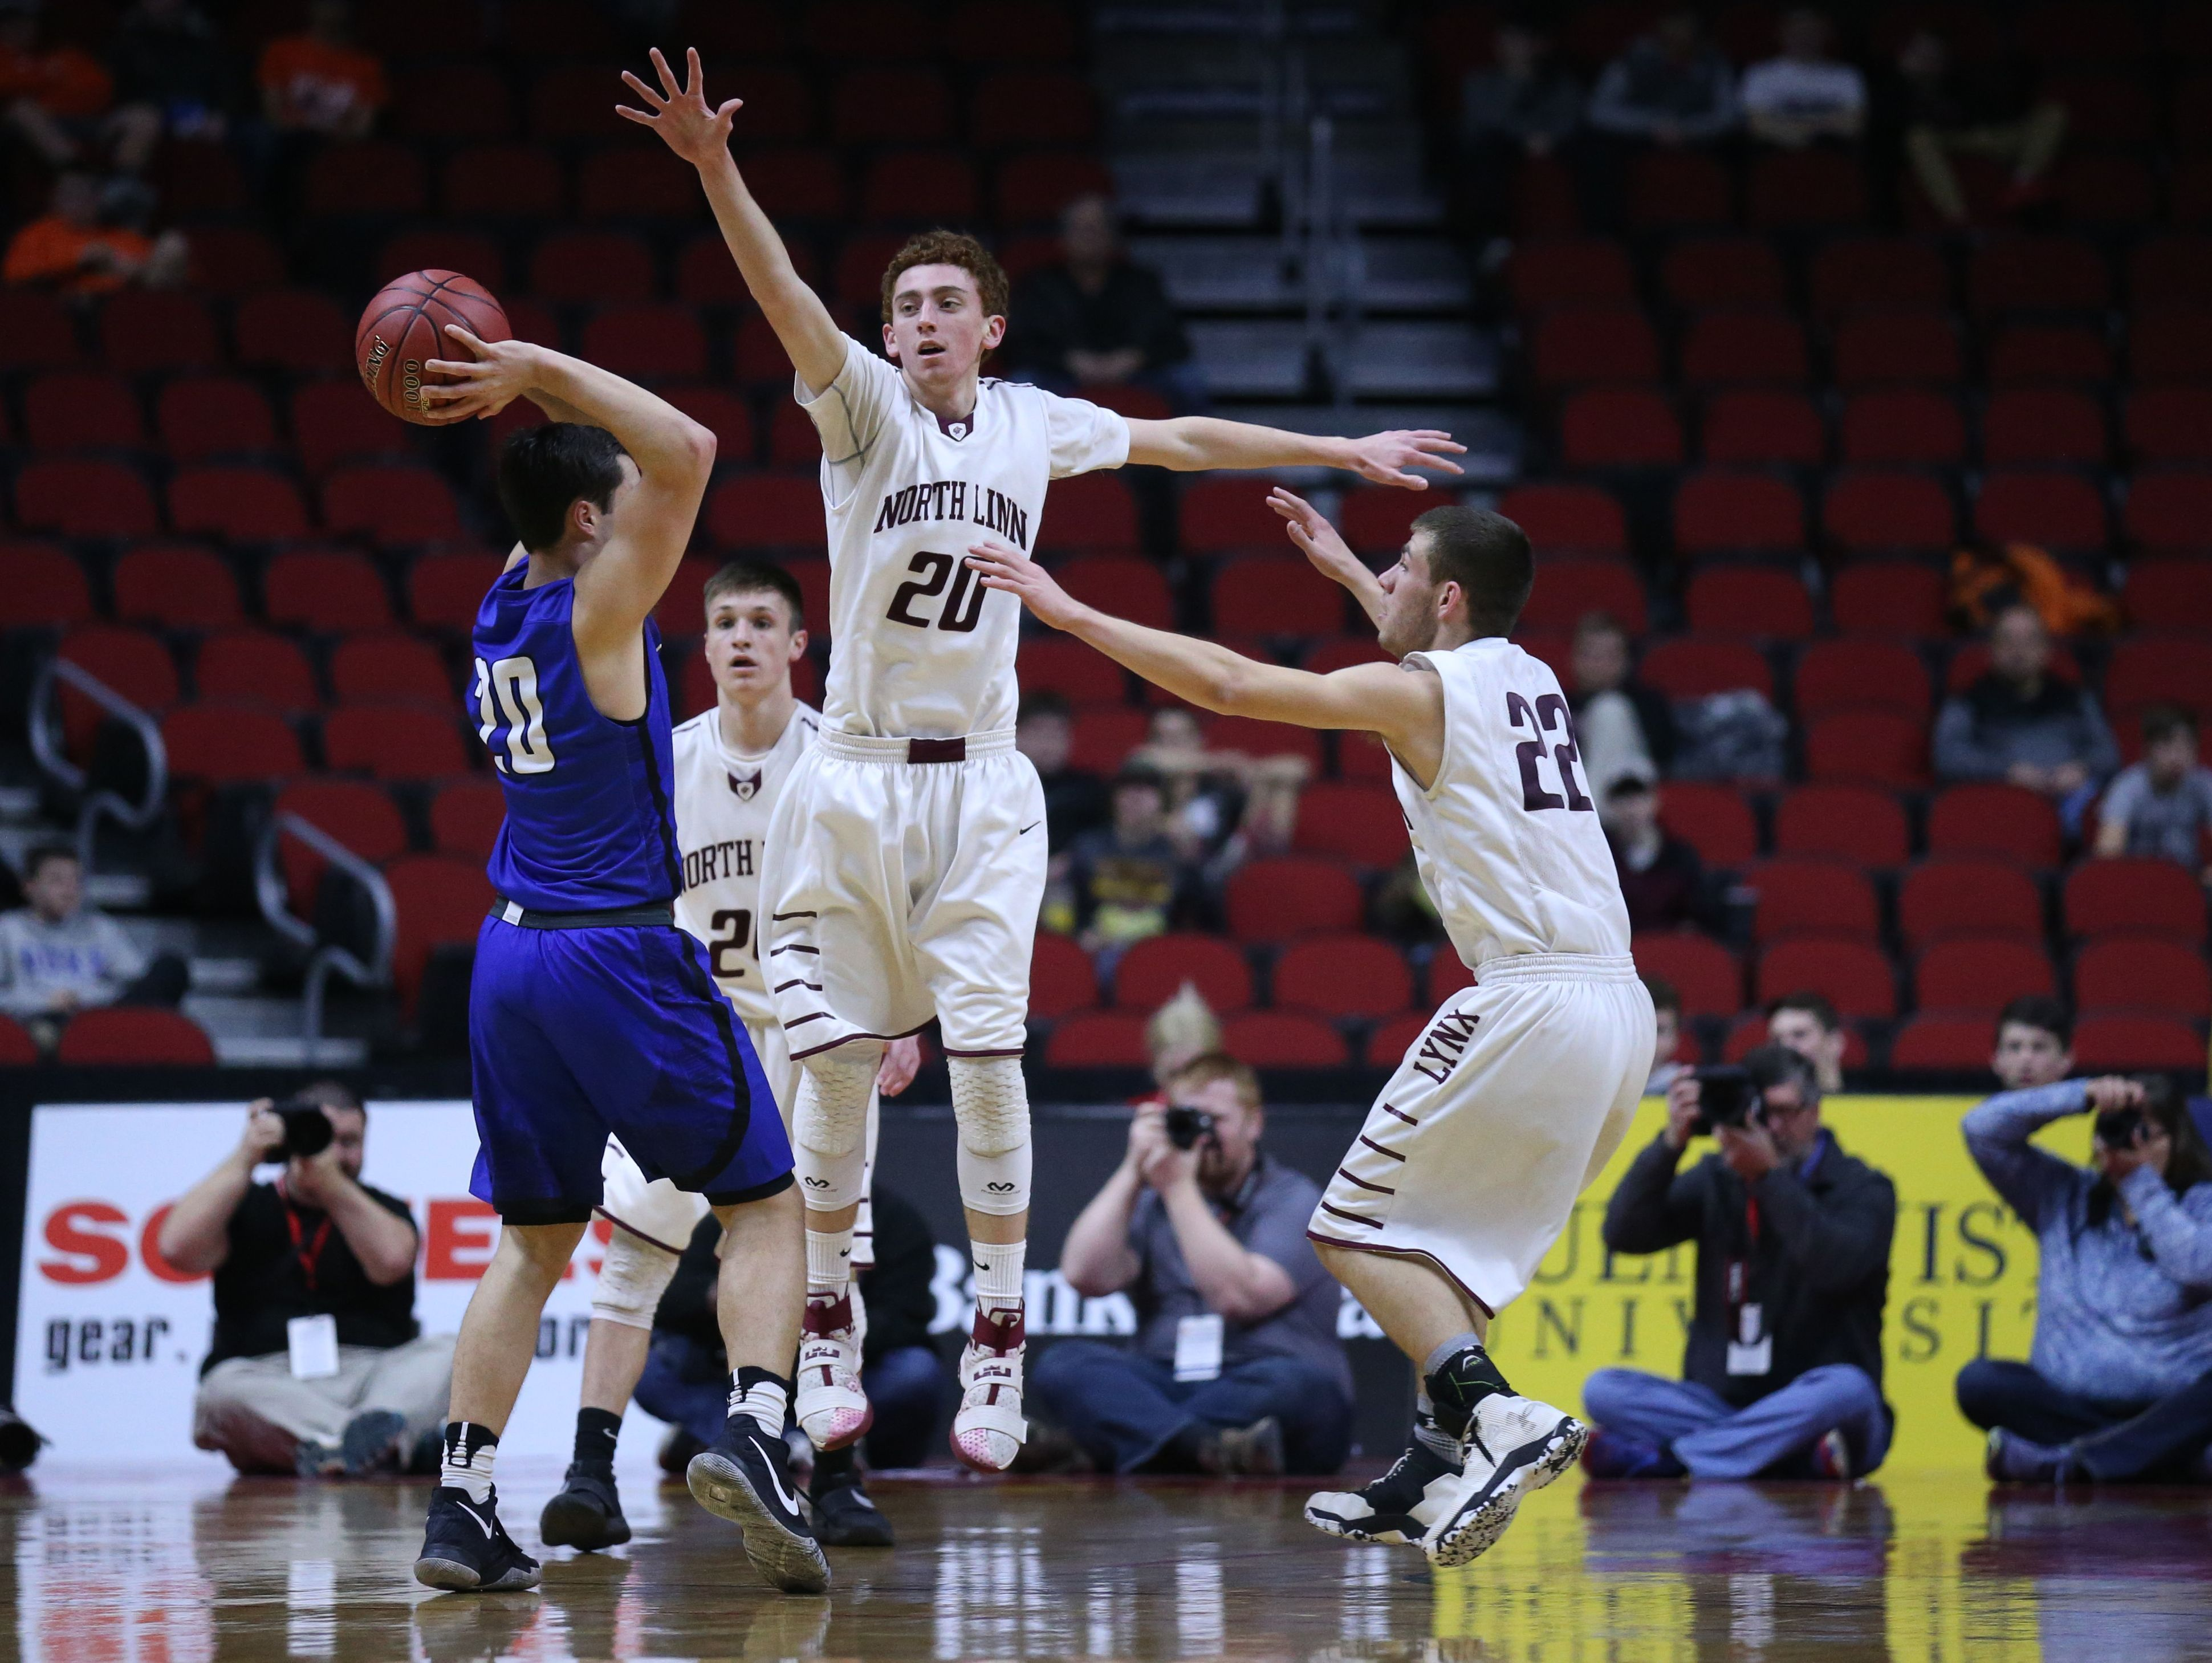 Gladbrook-Reinbeck's Joe Smoldt passes the ball past two North Linn defenders during the state boy's basketball 1A semifinal between North Linn and Gladbrook-Reinbeck on Thursday, March 9, 2017, in Wells Fargo Arena.